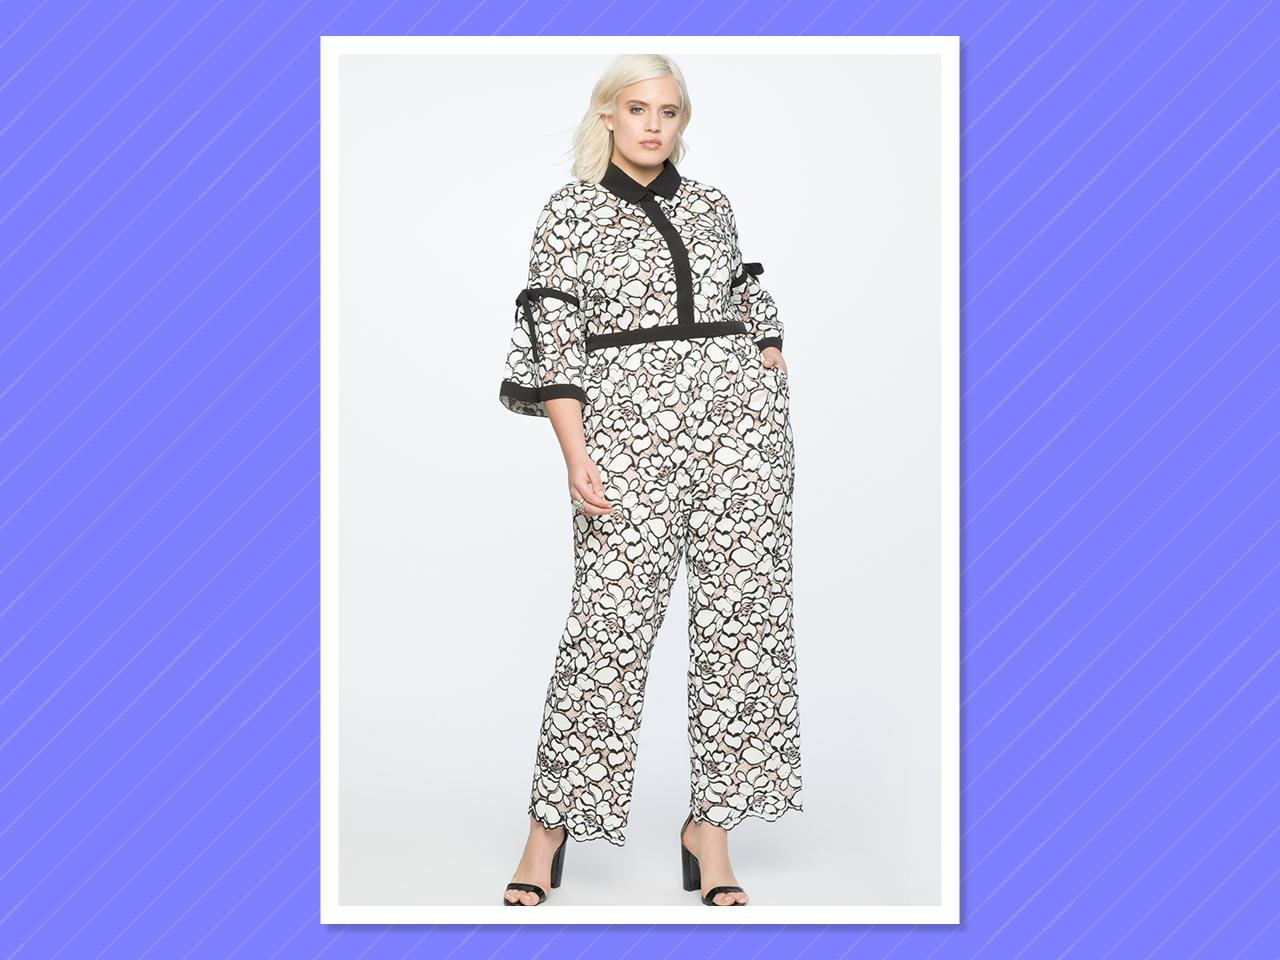 "<p>Eloquii Flounce Sleeve Lace Jumpsuit, $160, <a rel=""nofollow"" href=""http://www.eloquii.com/flounce-sleeve-lace-jumpsuit/1246272.html?cgid=jumpsuits&dwvar_1246272_colorCode=1&start=2"">eloquii.com</a><br /><br /></p>"